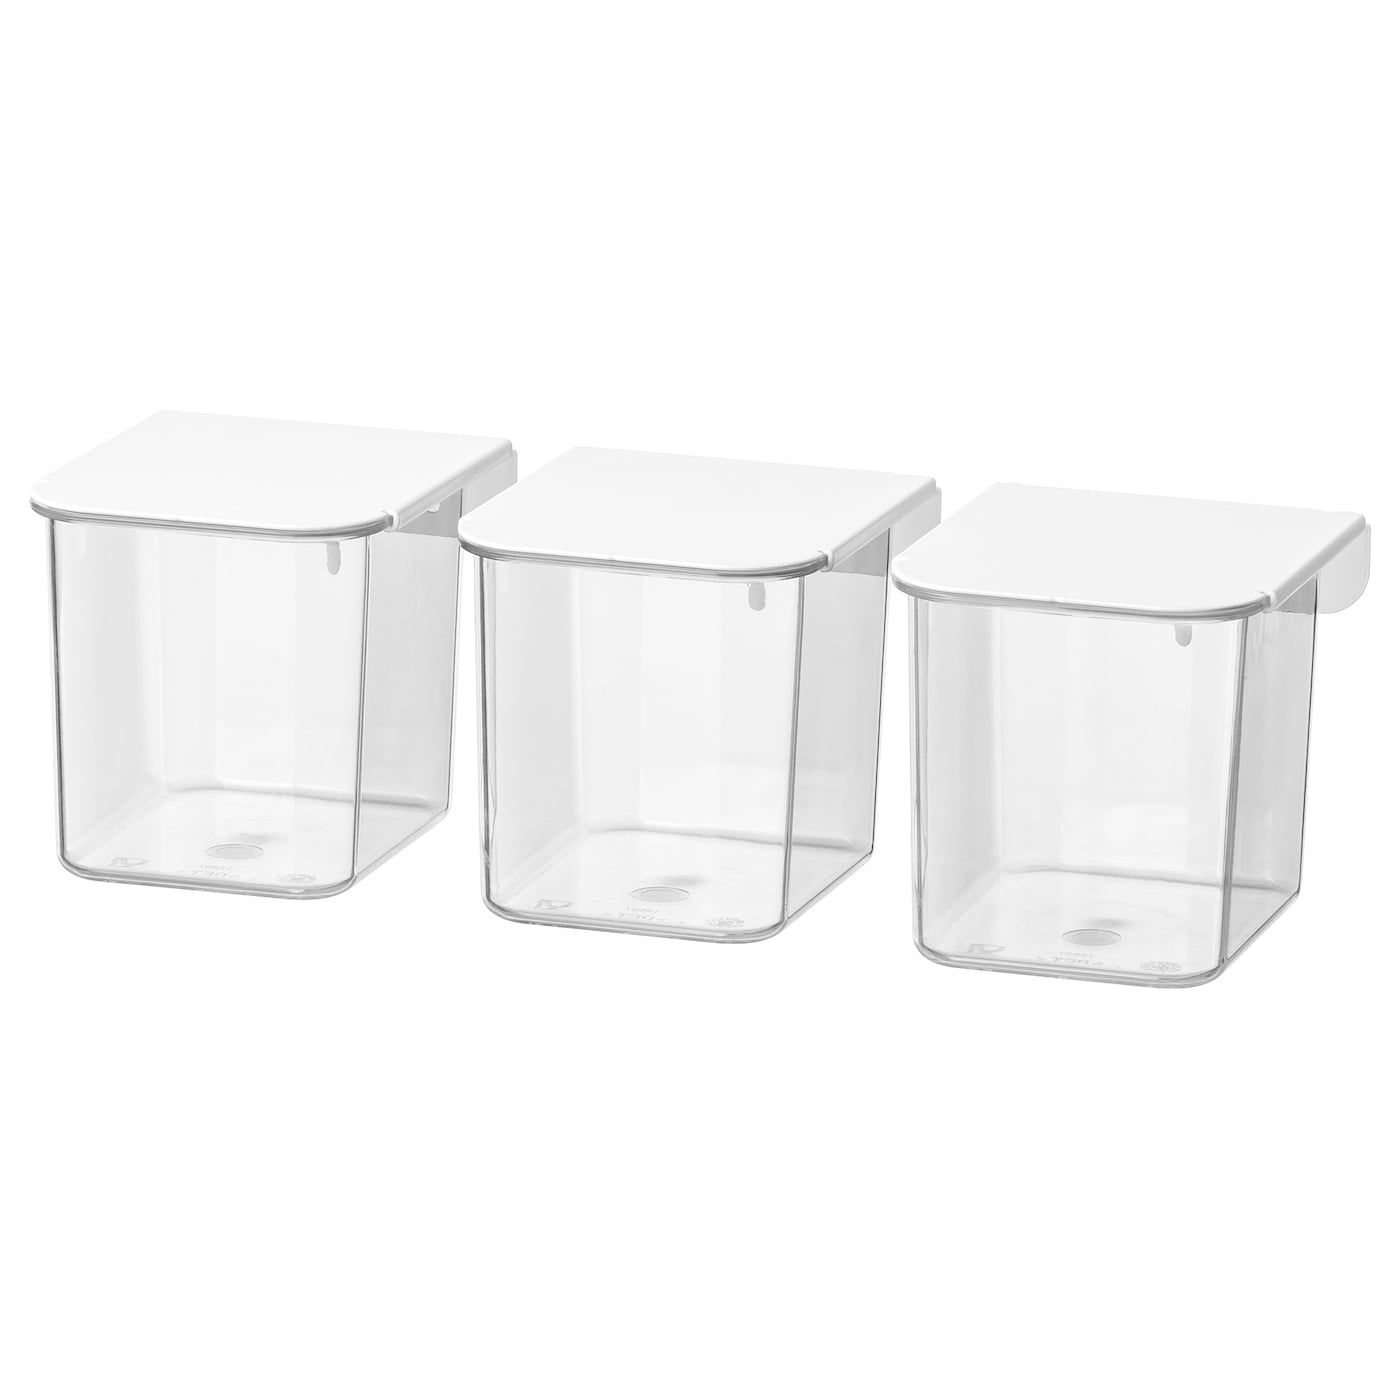 IKEA SKÅDIS container with lid Good for storing and organising spices, screws or craft supplies.